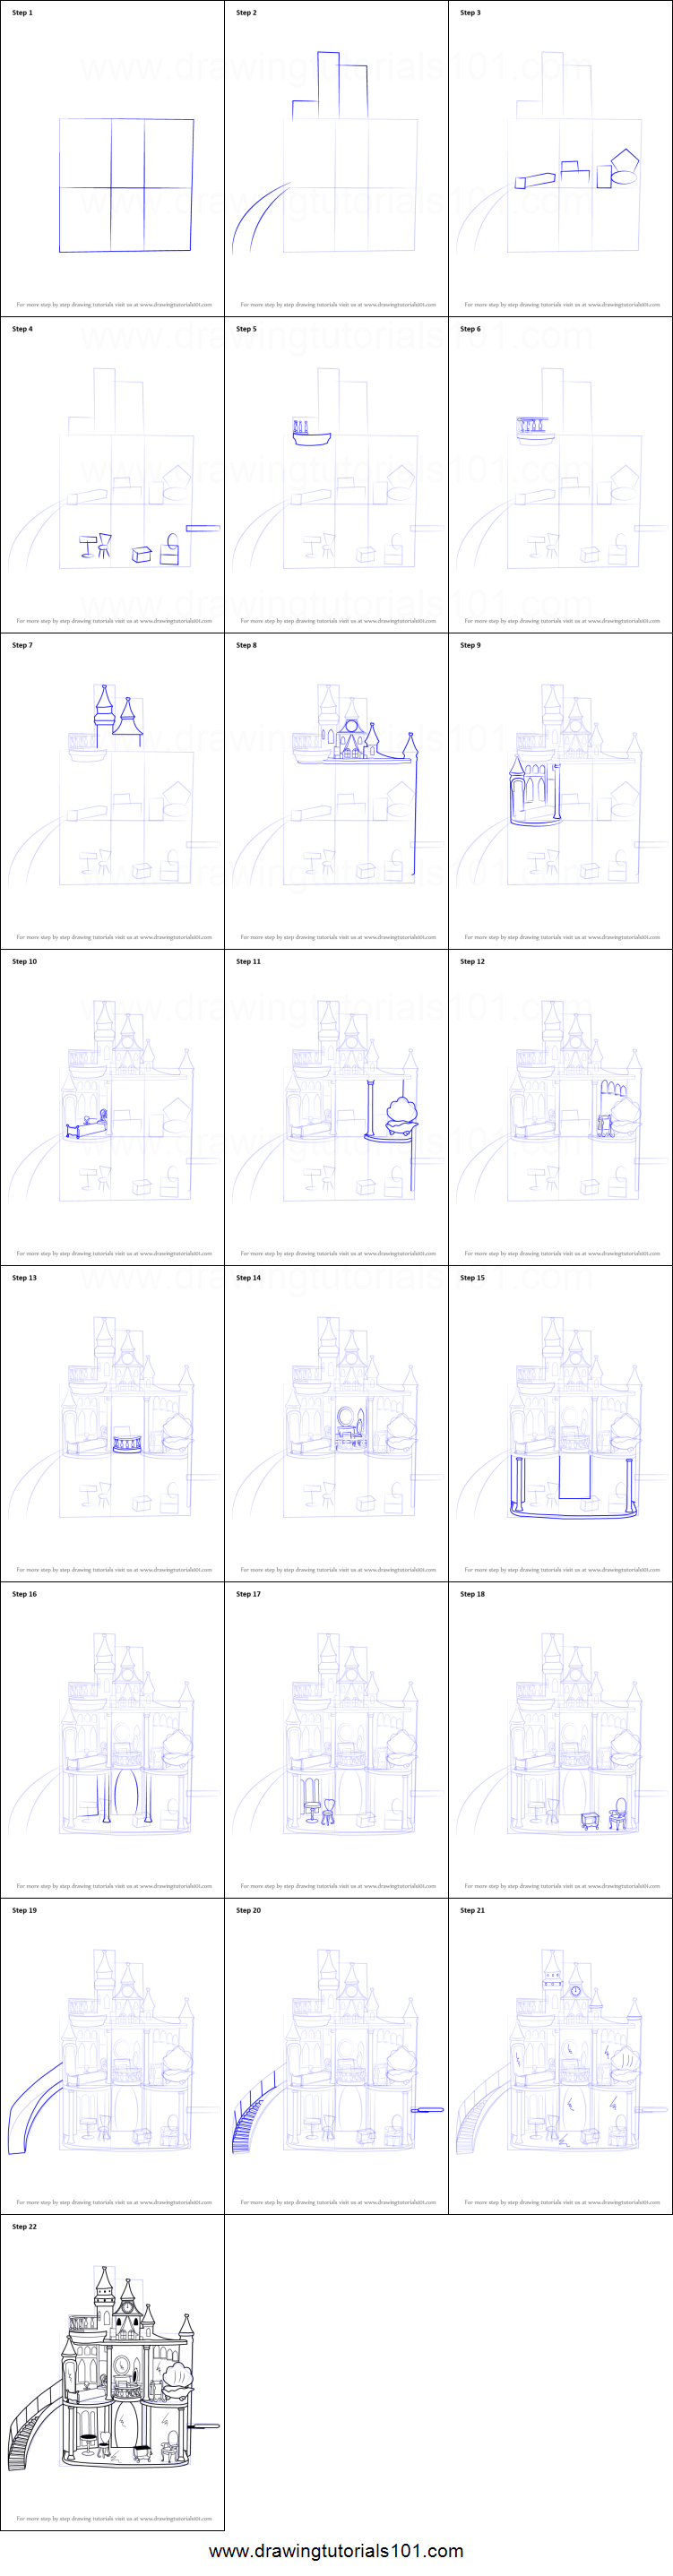 Castle Printable Step By Drawing Sheet DrawingTutorials101com